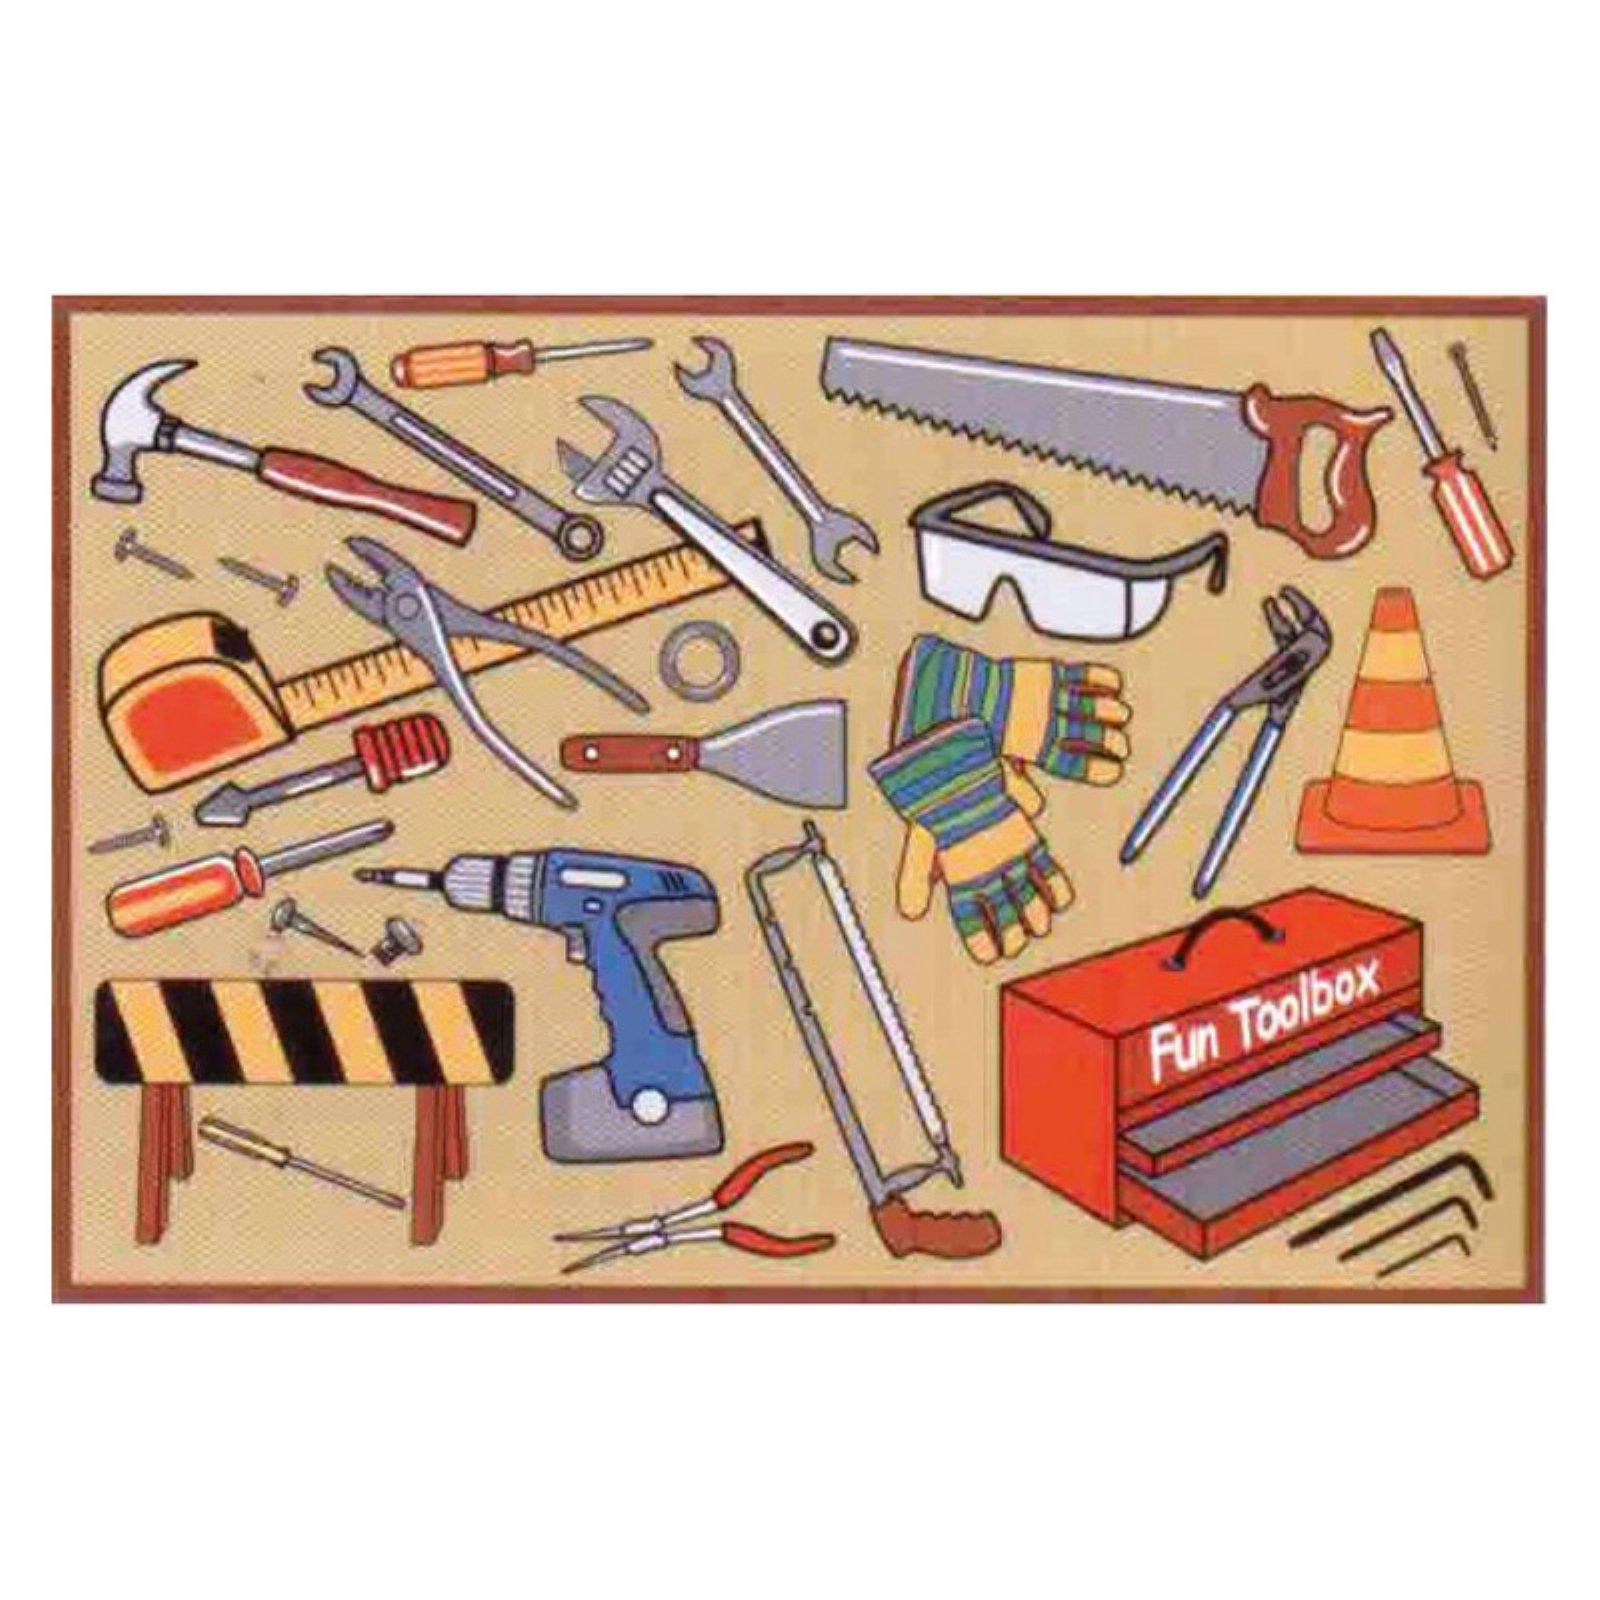 Fun Rugs Fun Toolbox Kids' Rug, Light Brown